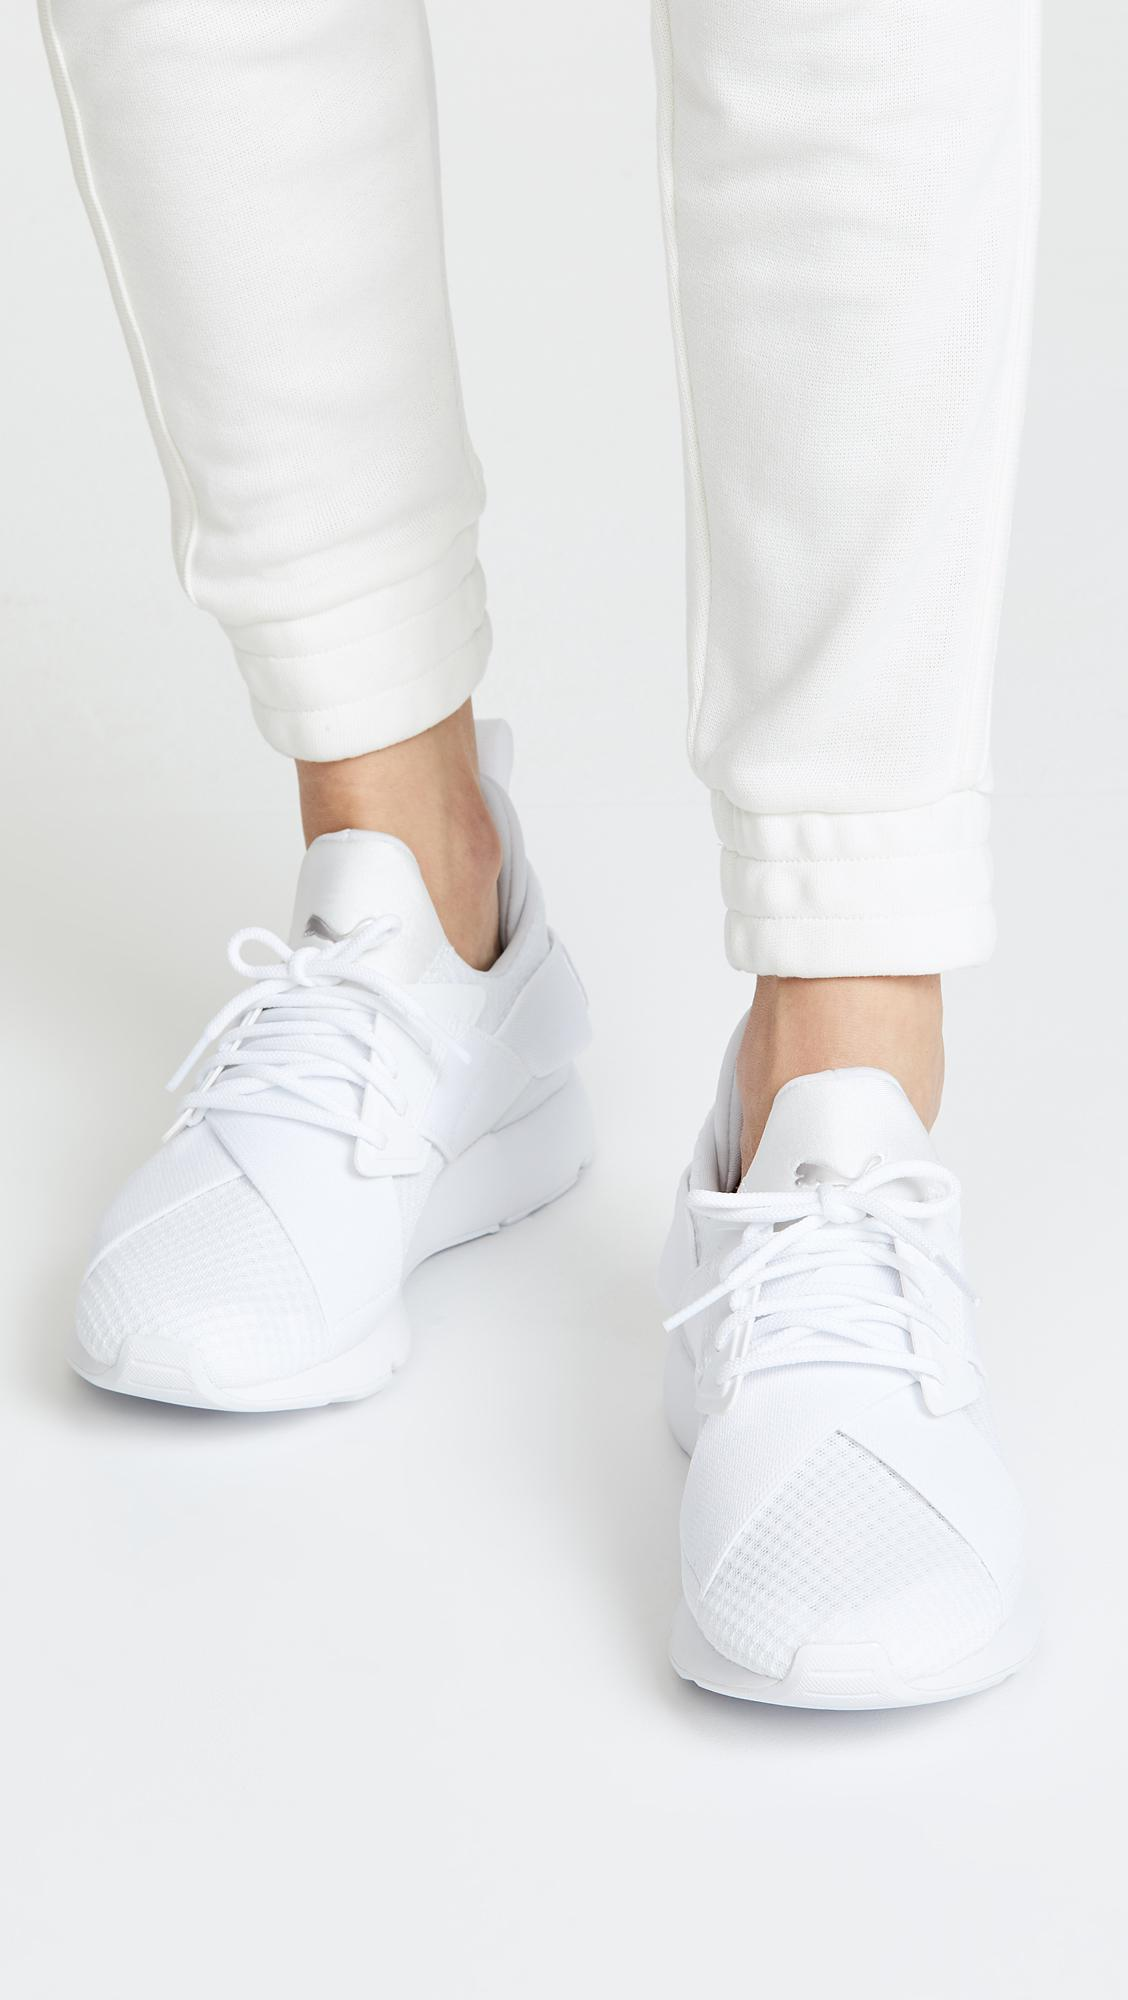 Lyst - PUMA Muse Ep Sneakers in White a10bd4f33